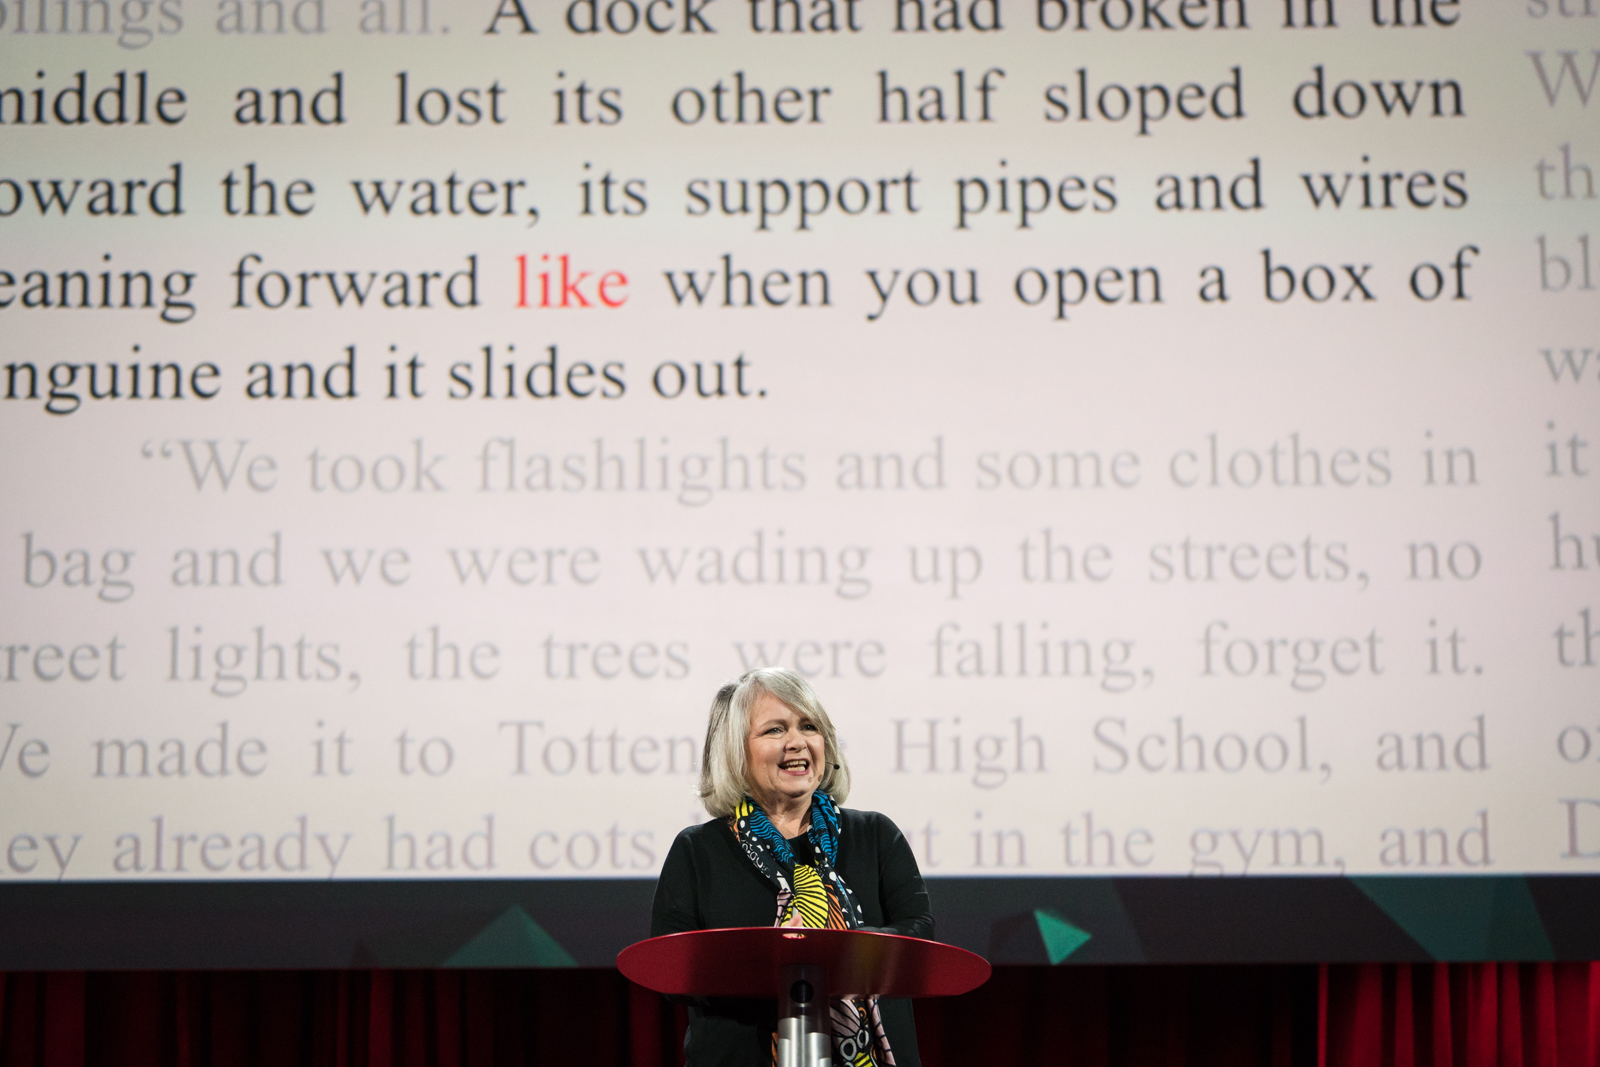 Mary Norris speaks at TED2016 - Dream, February 15-19, 2016, Vancouver Convention Center, Vancouver, Canada. Photo: Bret Hartman / TED